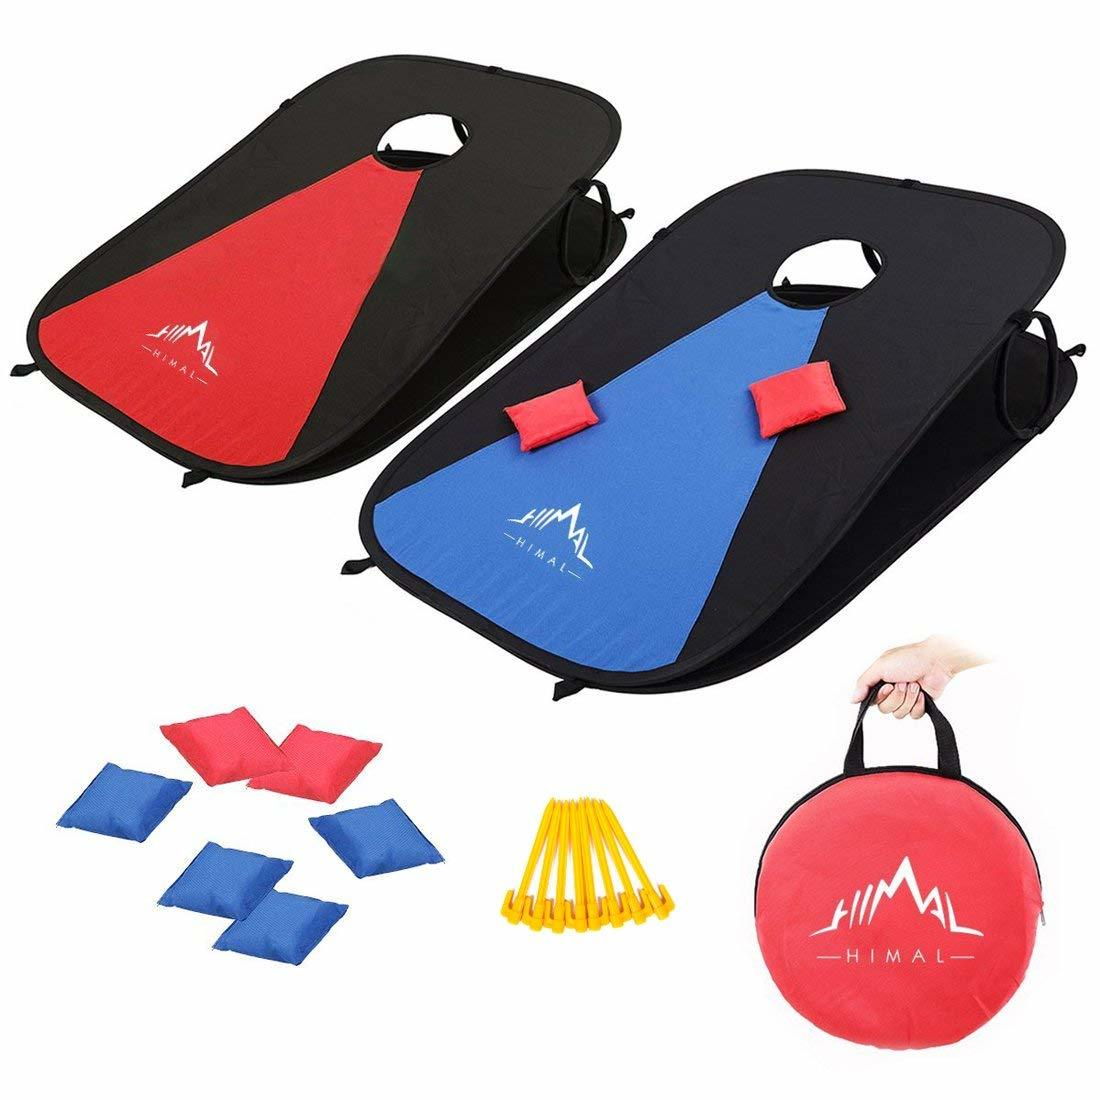 Himal Collapsible Portable Corn Hole Boards with 8 Cornhole Bean Bags photo